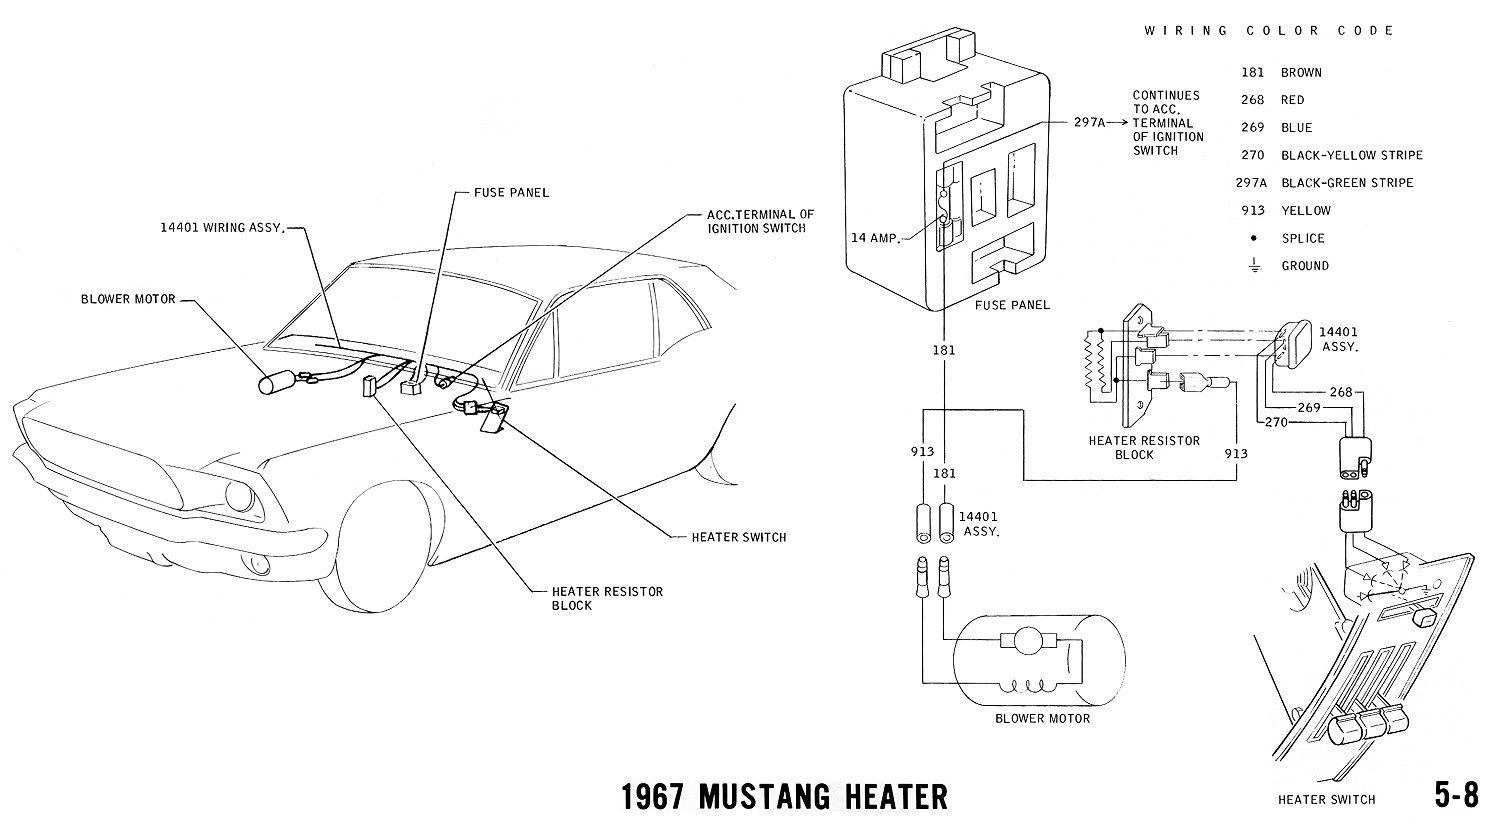 1966 Mustang Wiper Wiring. Diagram. Wiring Diagram Images